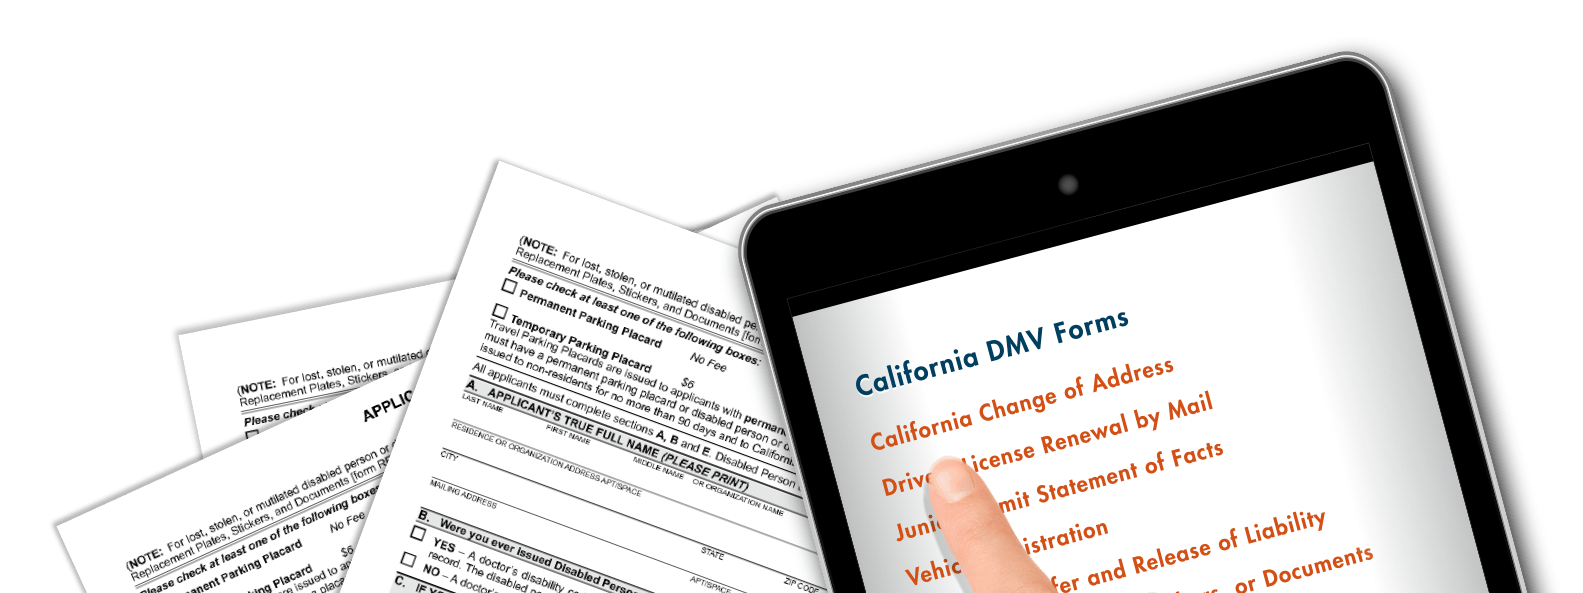 California dmv forms